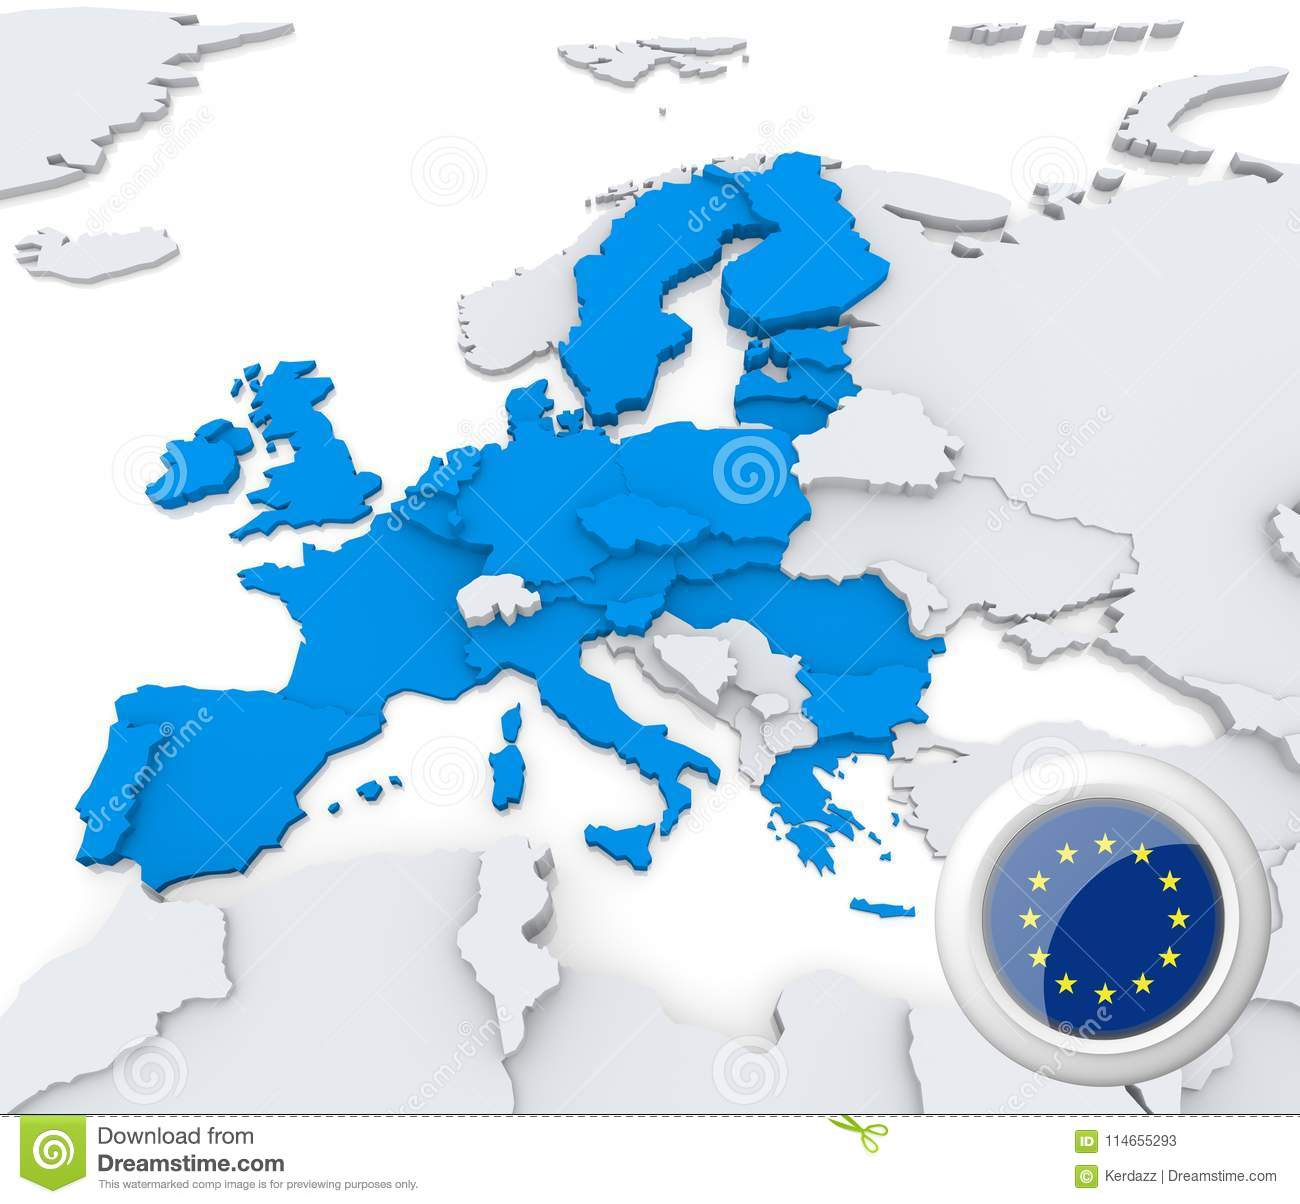 European union on map of europe stock illustration illustration of highlighted european union on map of europe with national flag publicscrutiny Gallery